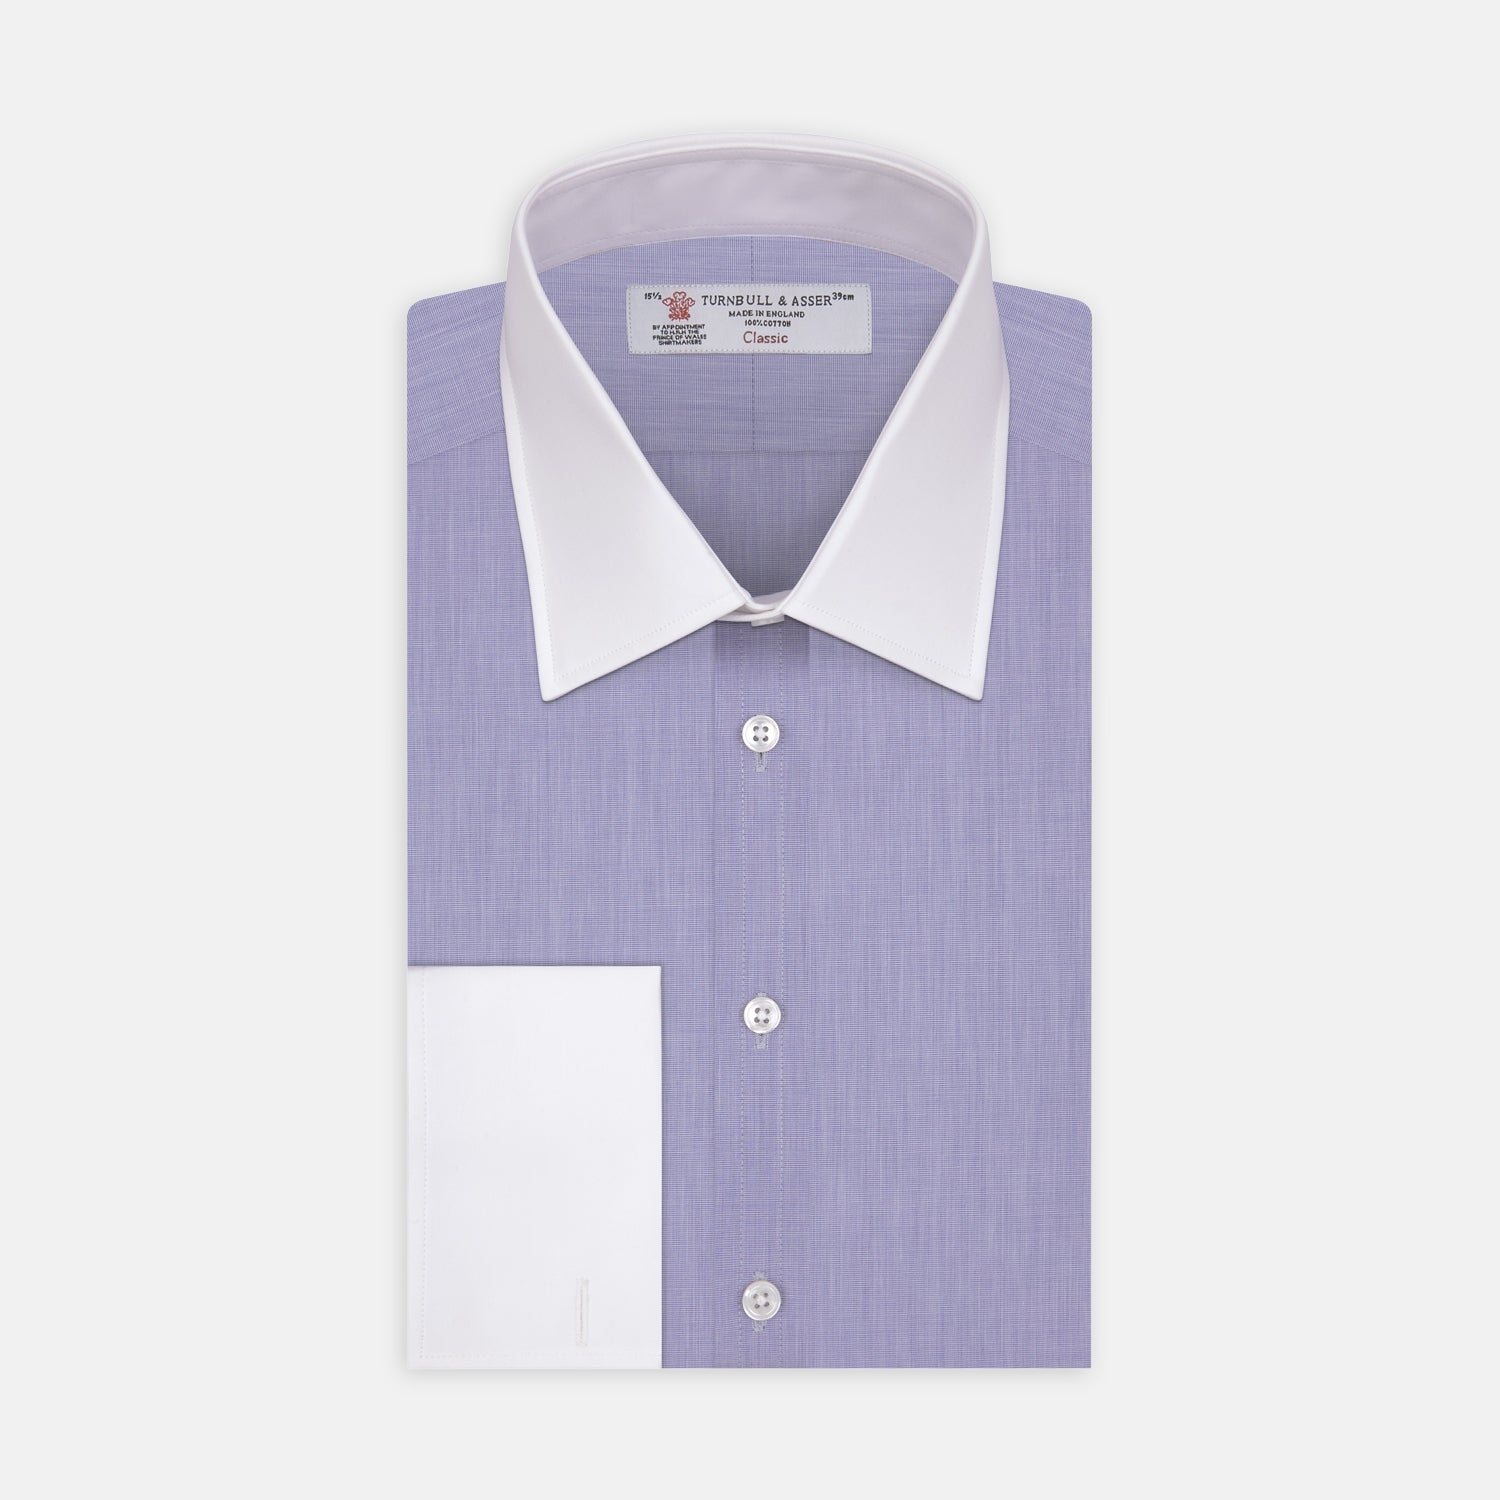 The Wall Street Shirt with White T&A Collar as seen on Gordon Gekko